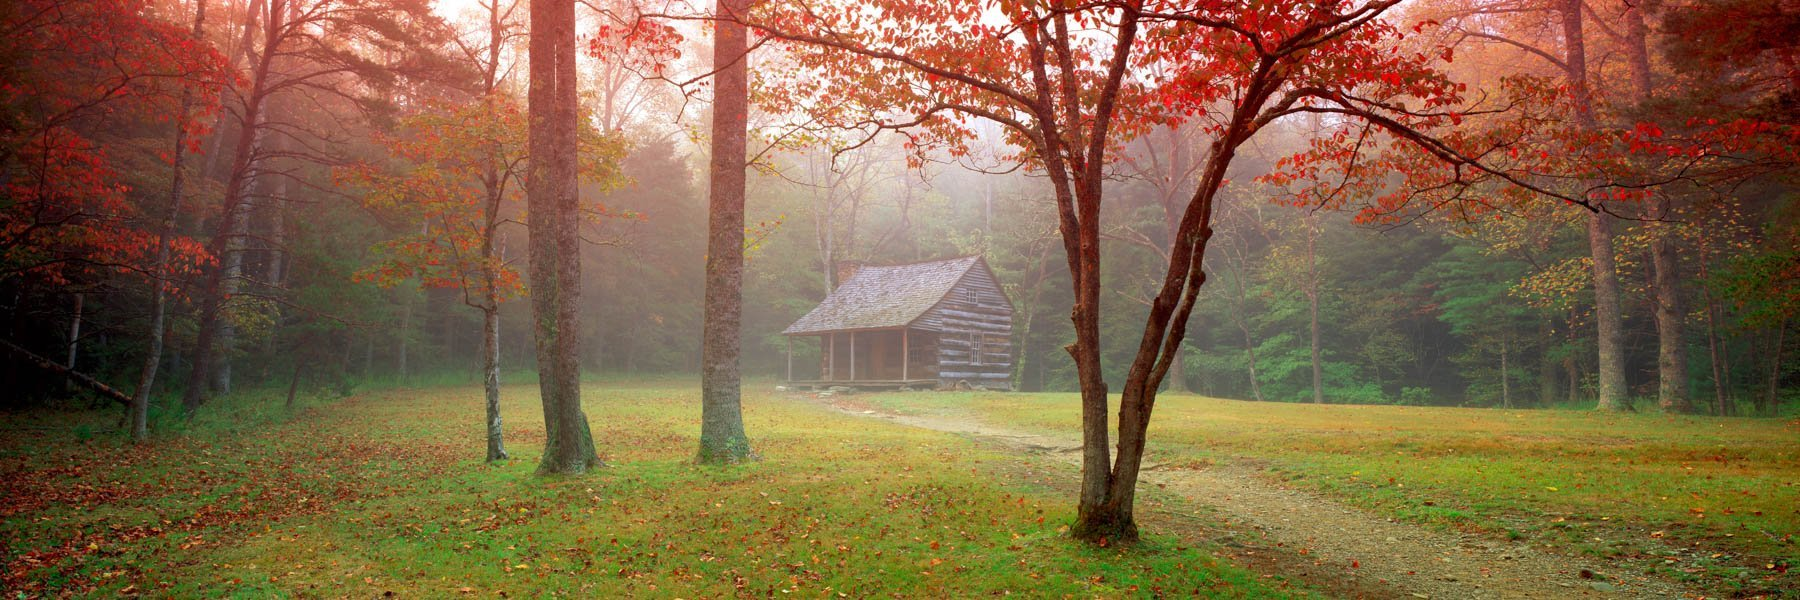 Historic Carter Shields Cabin, Great Smoky Mountains, Tennessee, USA.